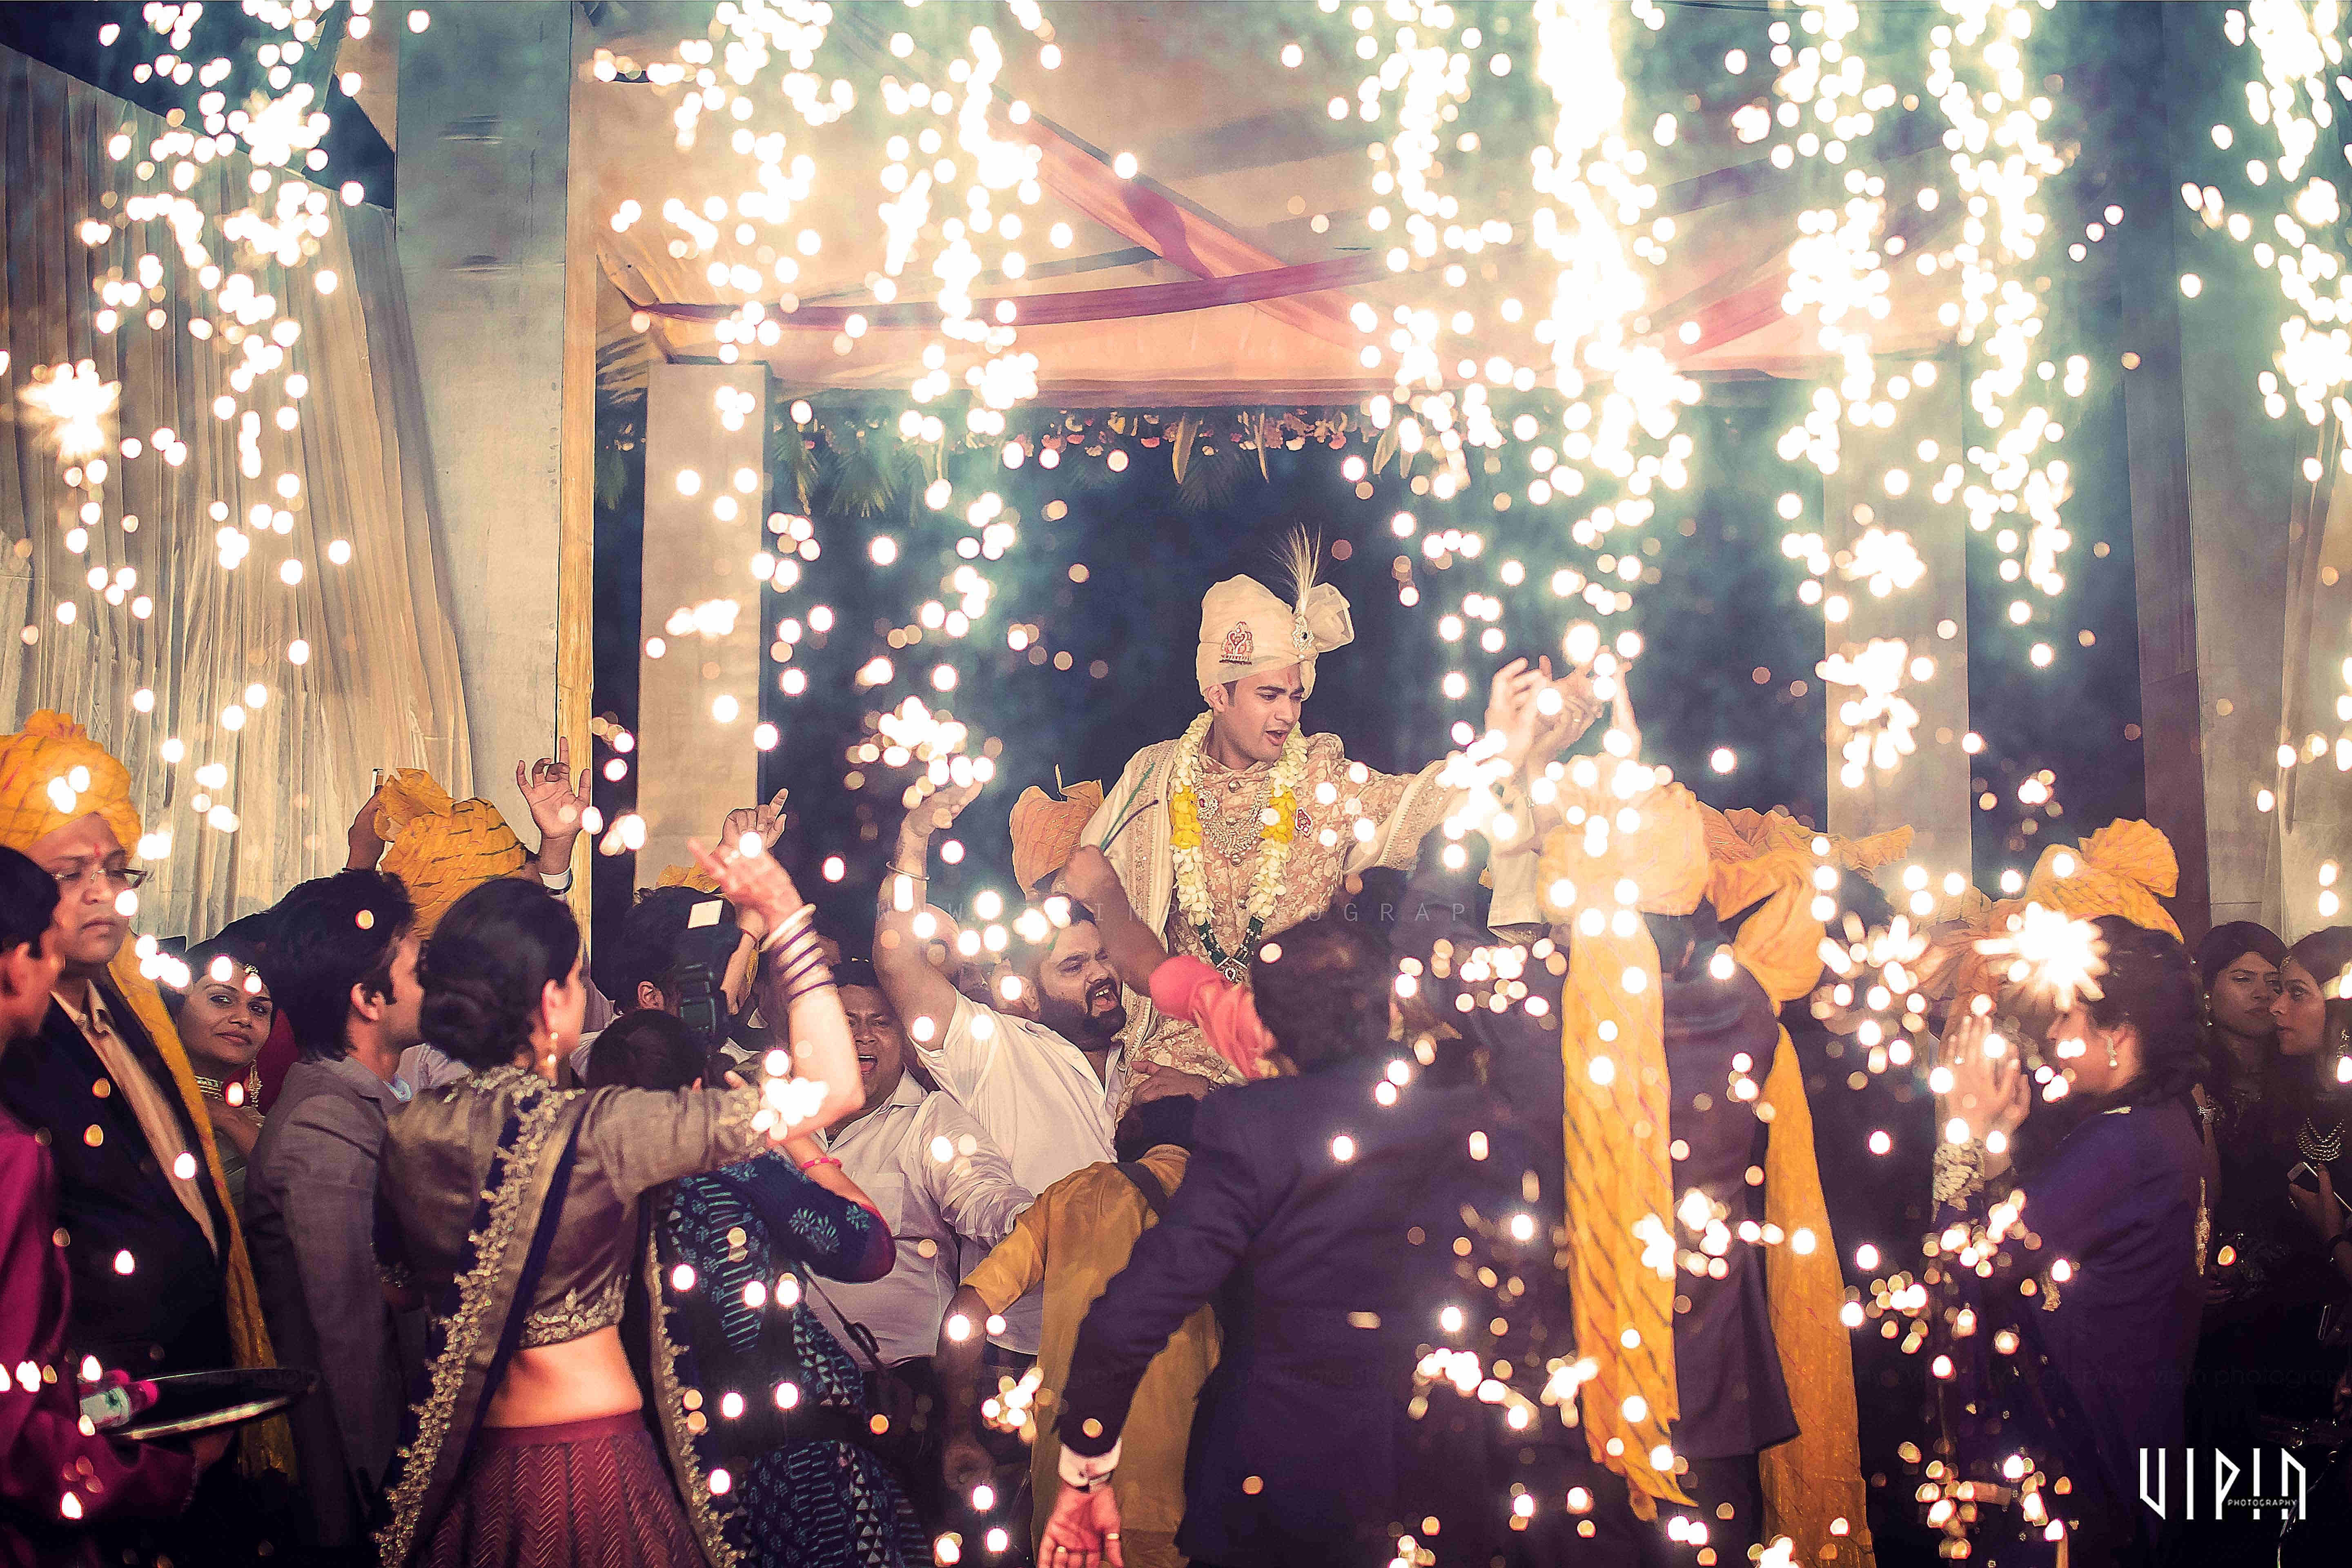 the groom keshav!:vipin photography, bianca, sabyasachi couture pvt ltd